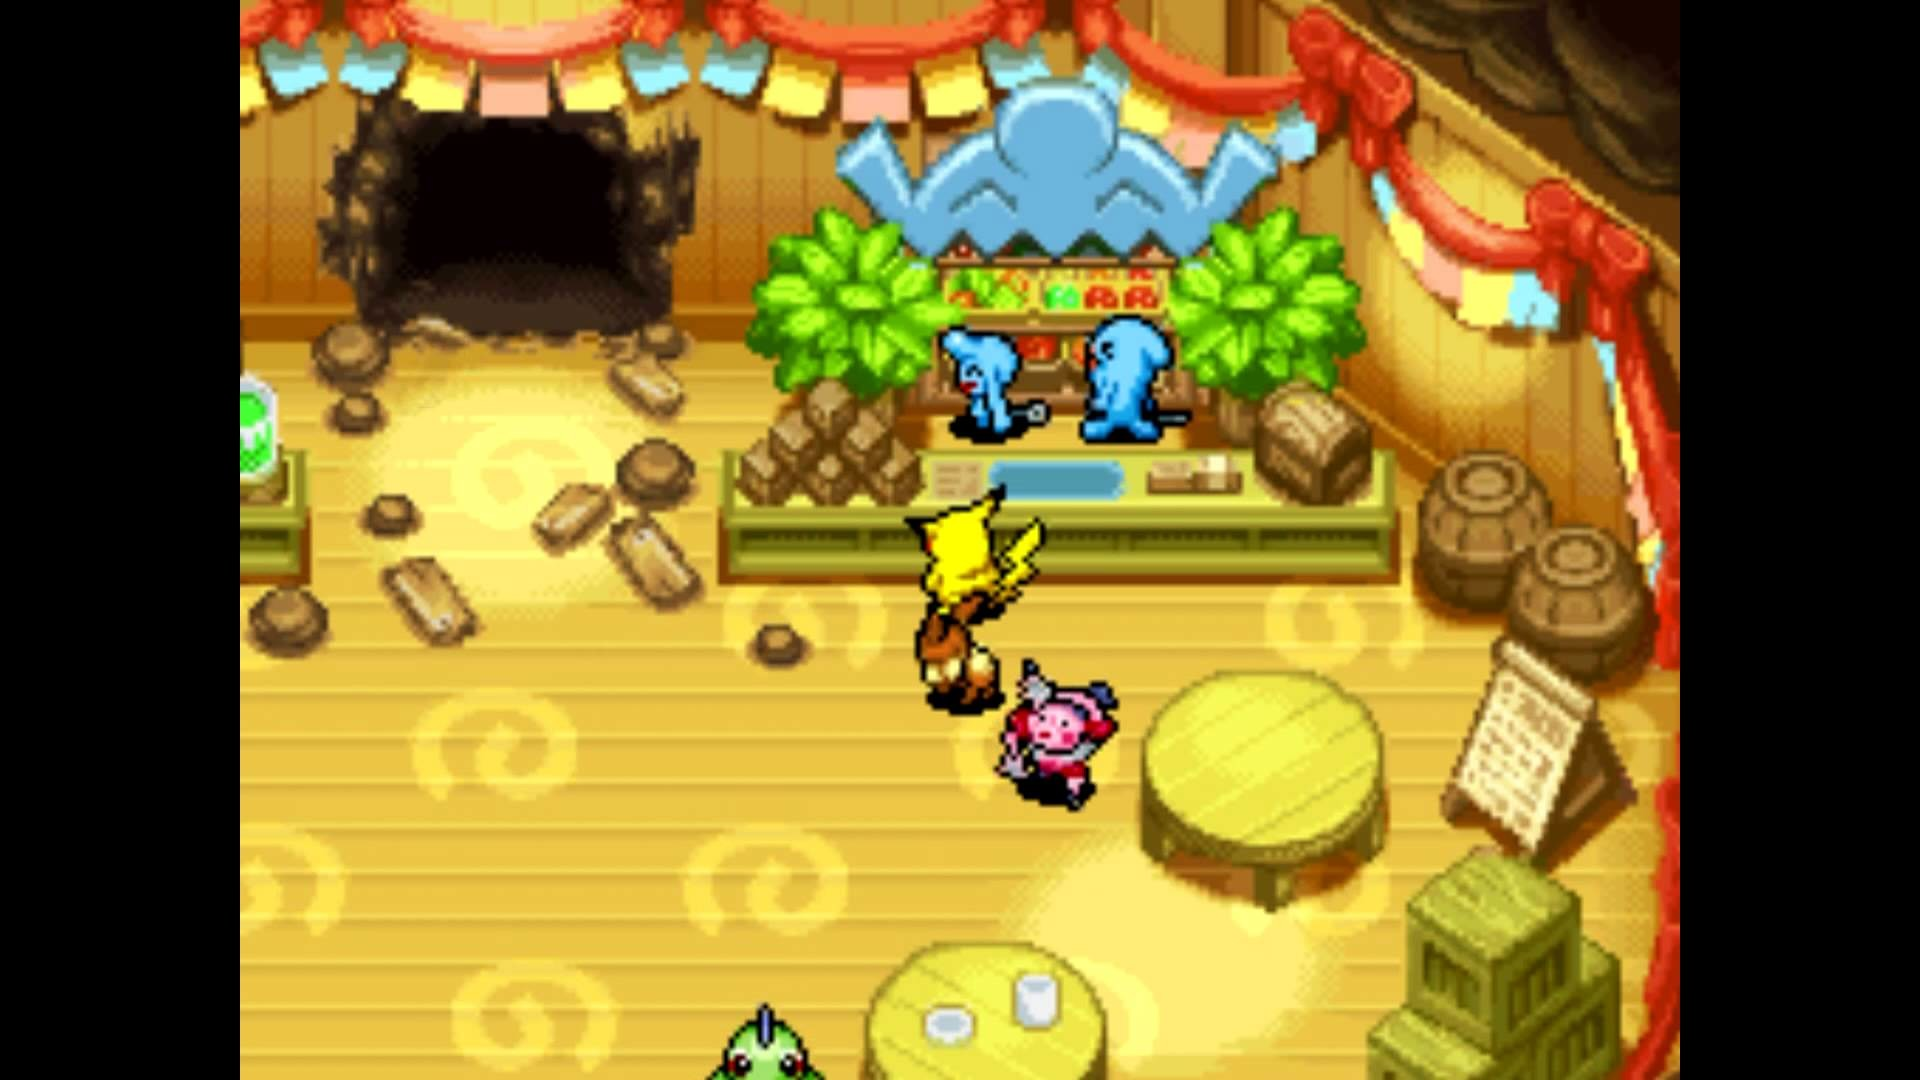 Pok?mon Mystery Dungeon: Explorers of Sky – Recycle Shop Big Win .